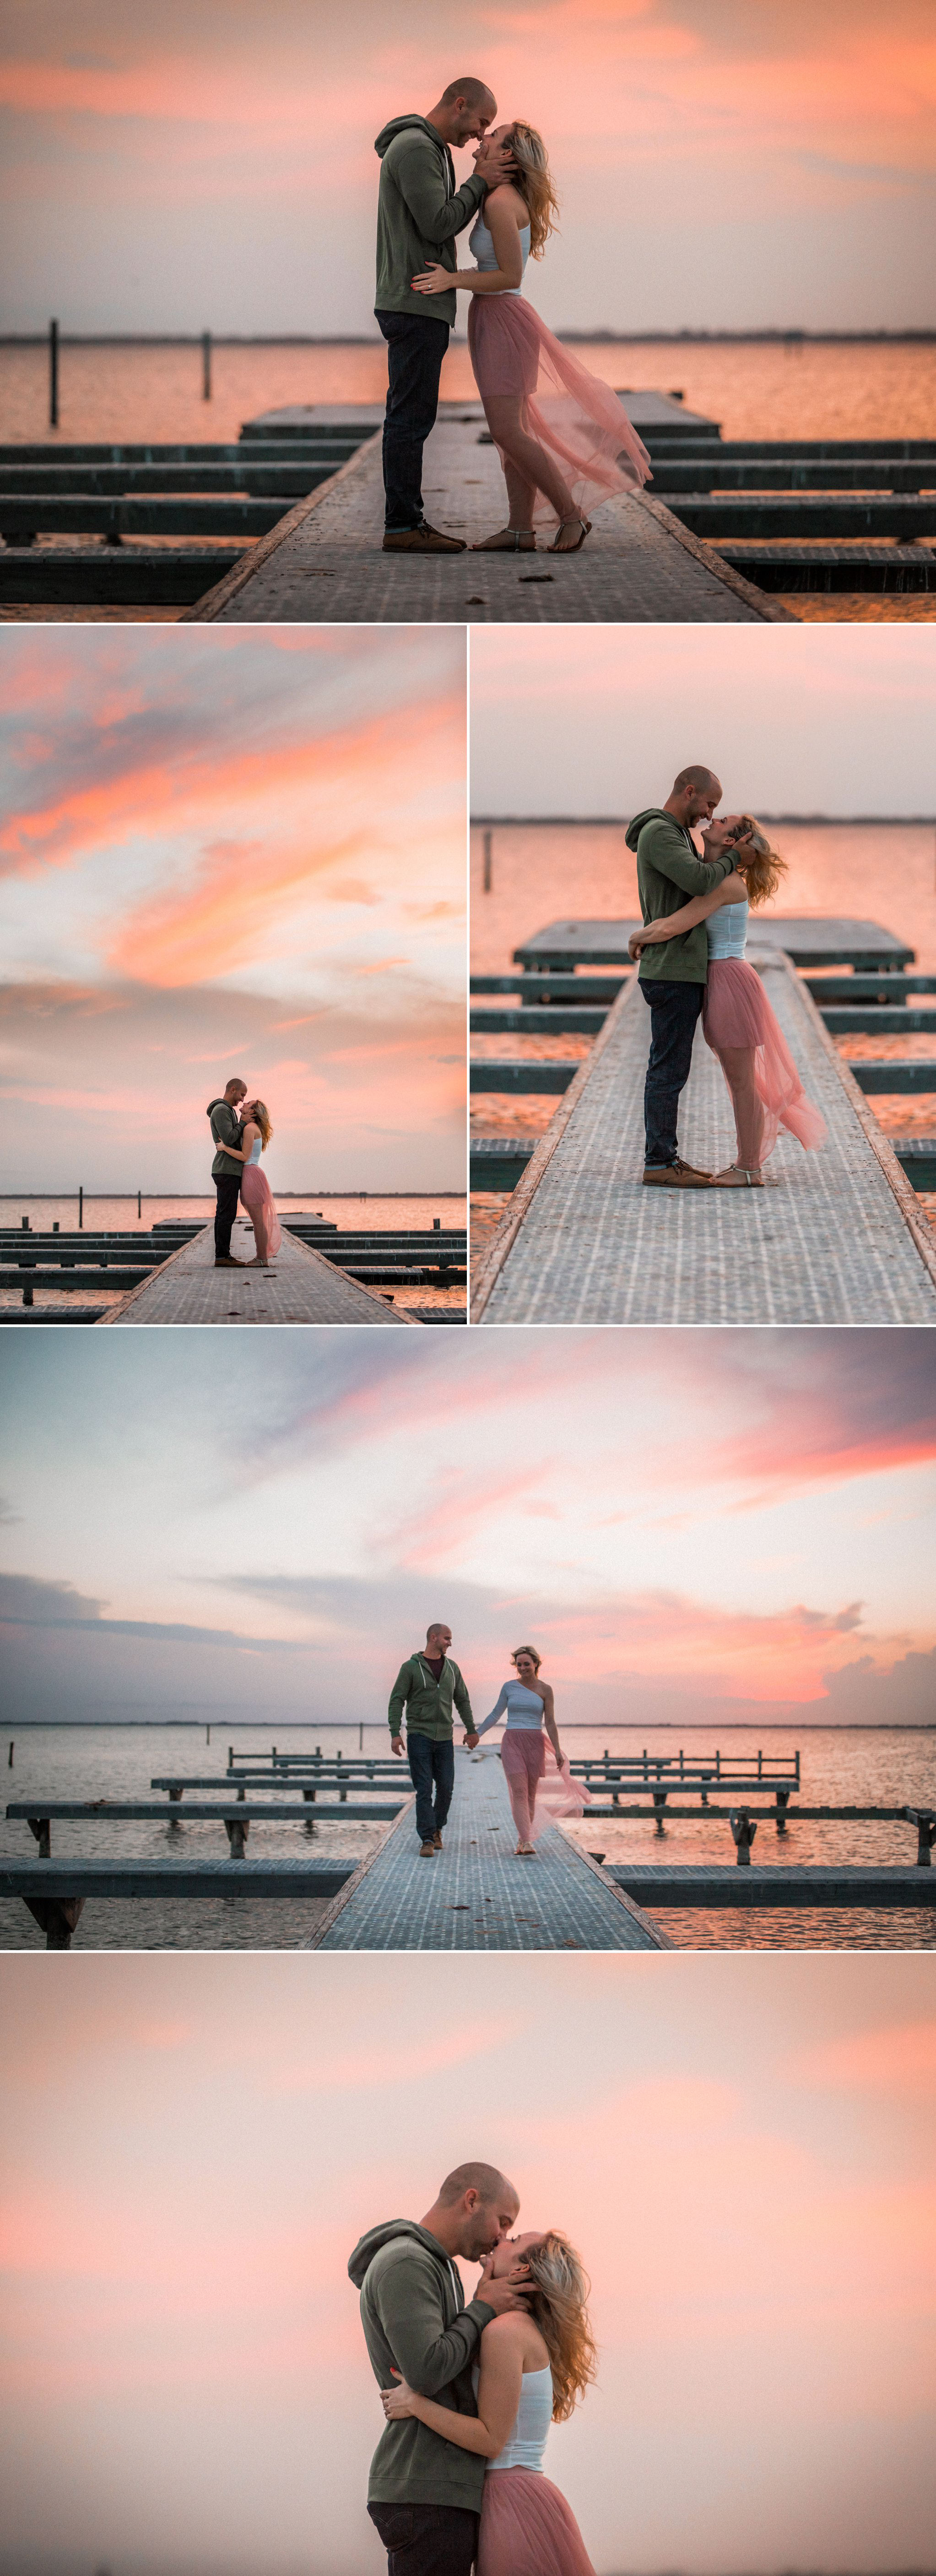 Tommy + Courtney's Cocoa Beach engagement || Casual boho surf style engagement outfit inspiration - she wore a white off the shoulder blouse, pink tulle gown and sandals; he wore a green hoody dark jeans and brown leather shoes. || Engagement photography by Shaina DeCiryan Lifestyle Wedding Photography || Book your 2017/2018 Wedding at: ShainaDeCiryan.com @shainadeciryan